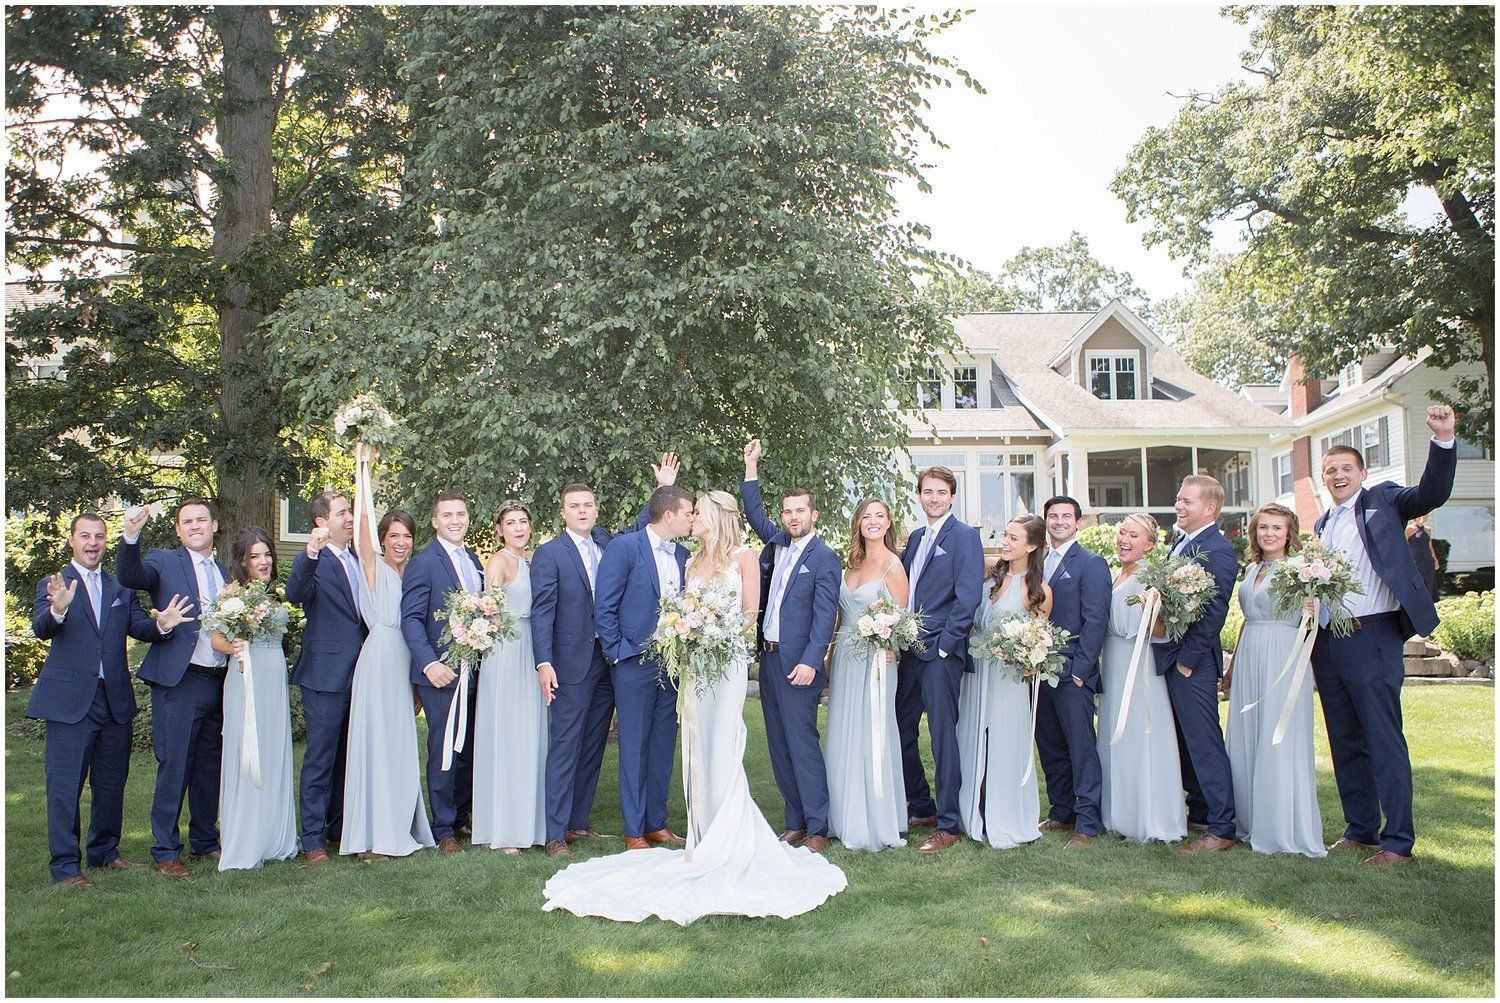 We Love The Powder Blue Color For Bridesmaids Dresses Specially Because It Pairs So We Powder Blue Bridesmaid Dress Blue Suit Wedding Navy Blue Suit Wedding